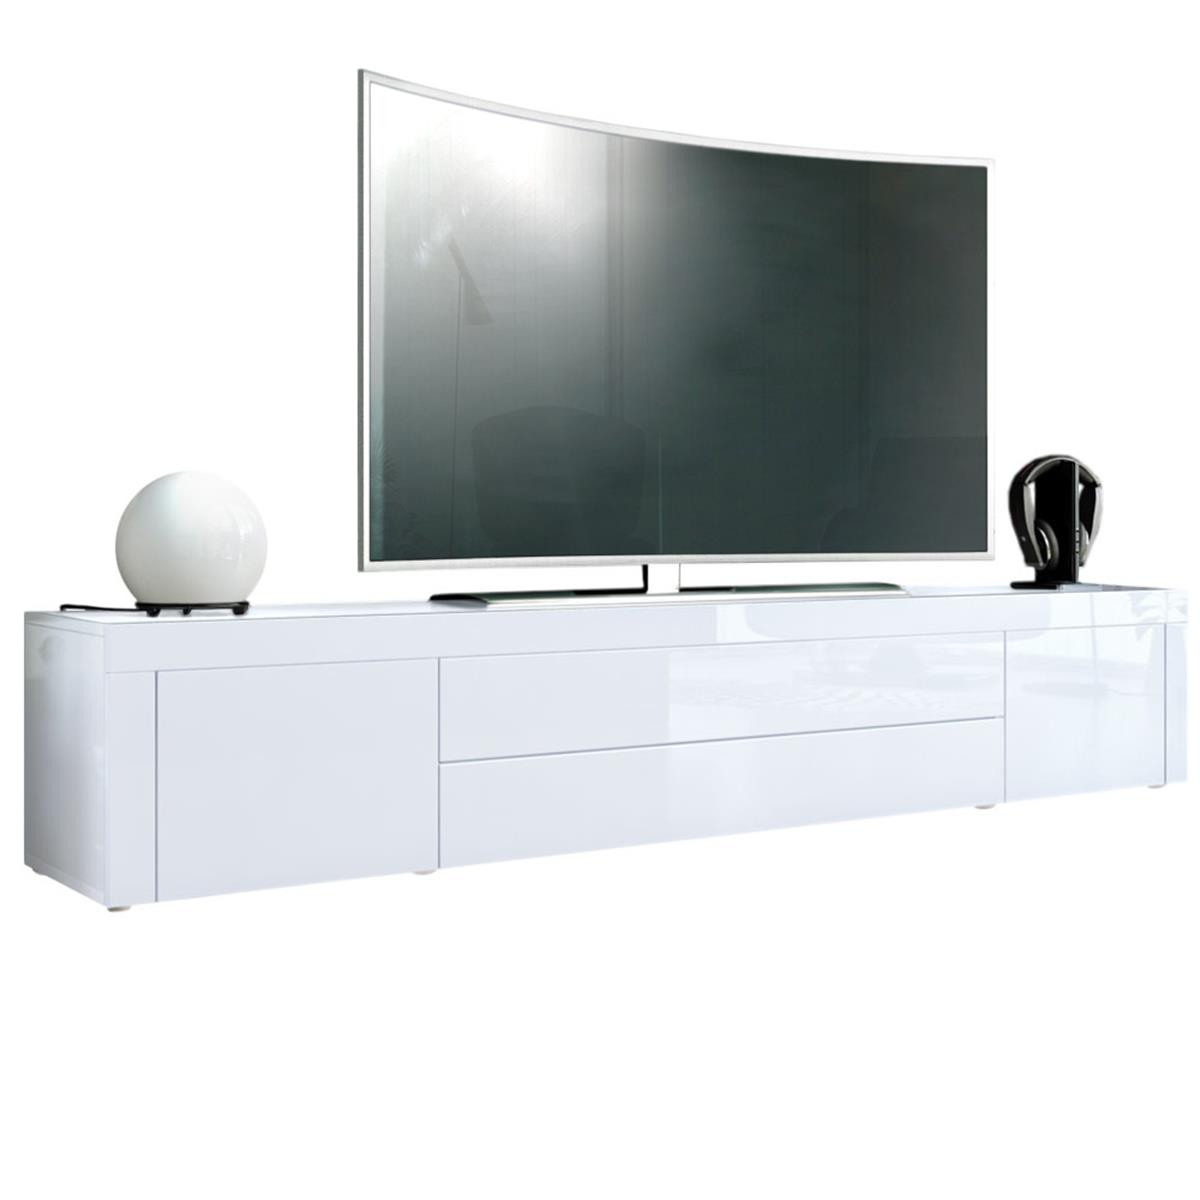 tv unterschrank la paz lowboard mit hochglanz absetzung. Black Bedroom Furniture Sets. Home Design Ideas